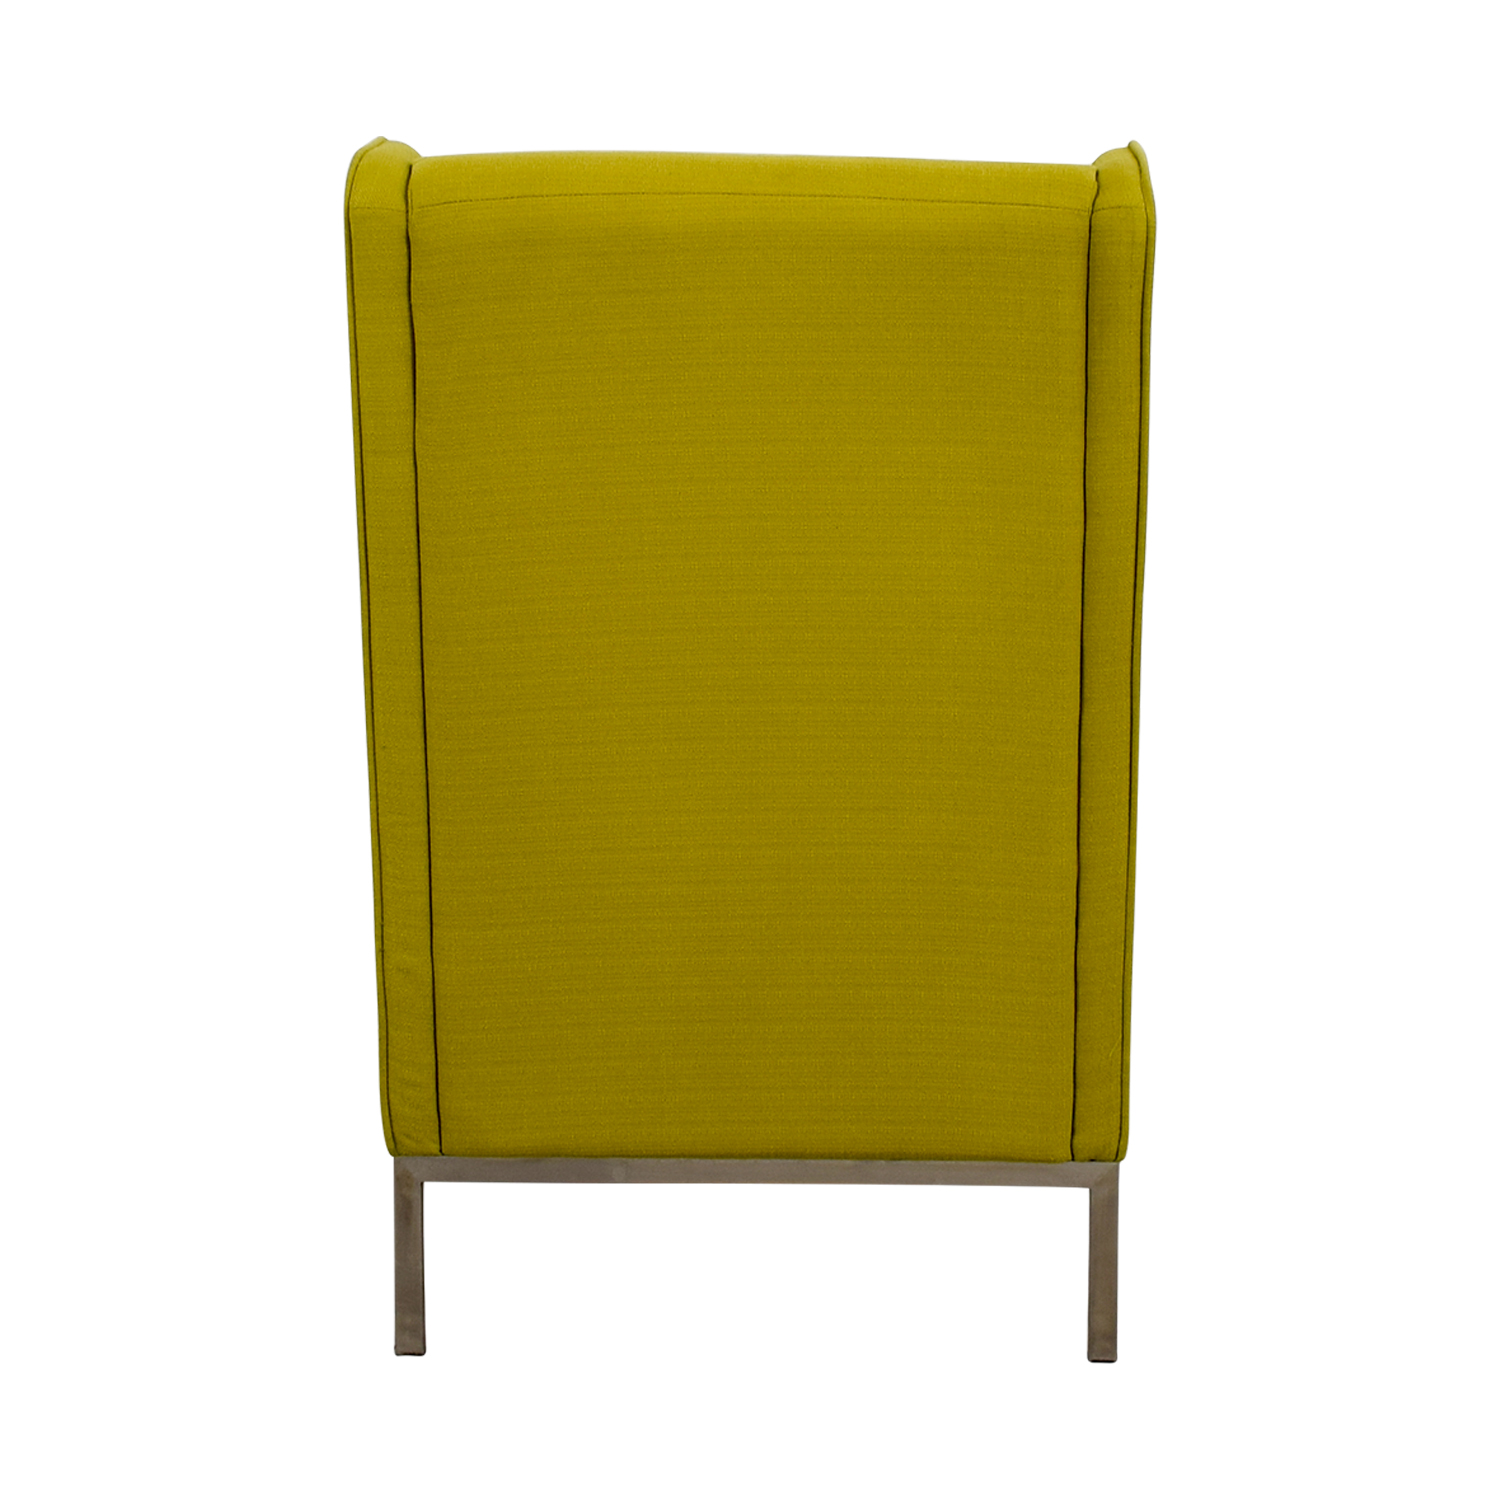 Crate and Barrel Neon Green Accent Chair Crate and Barrel